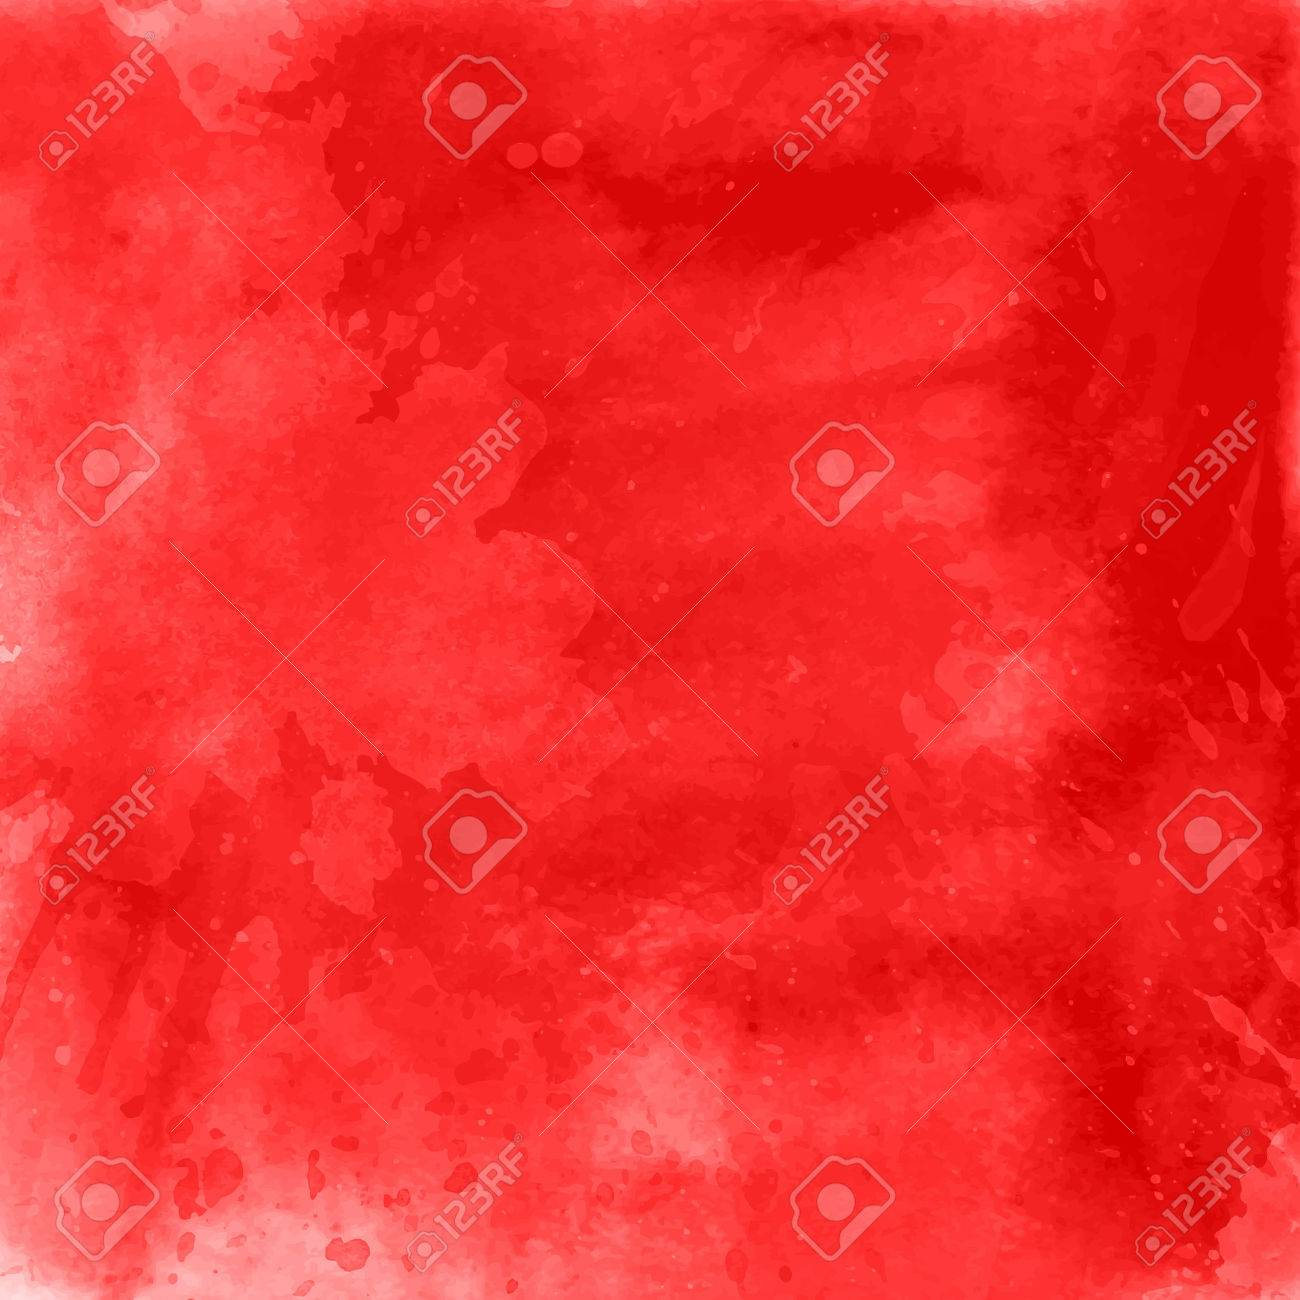 Red watercolour background - ideal for Valentine's Day - 51662850